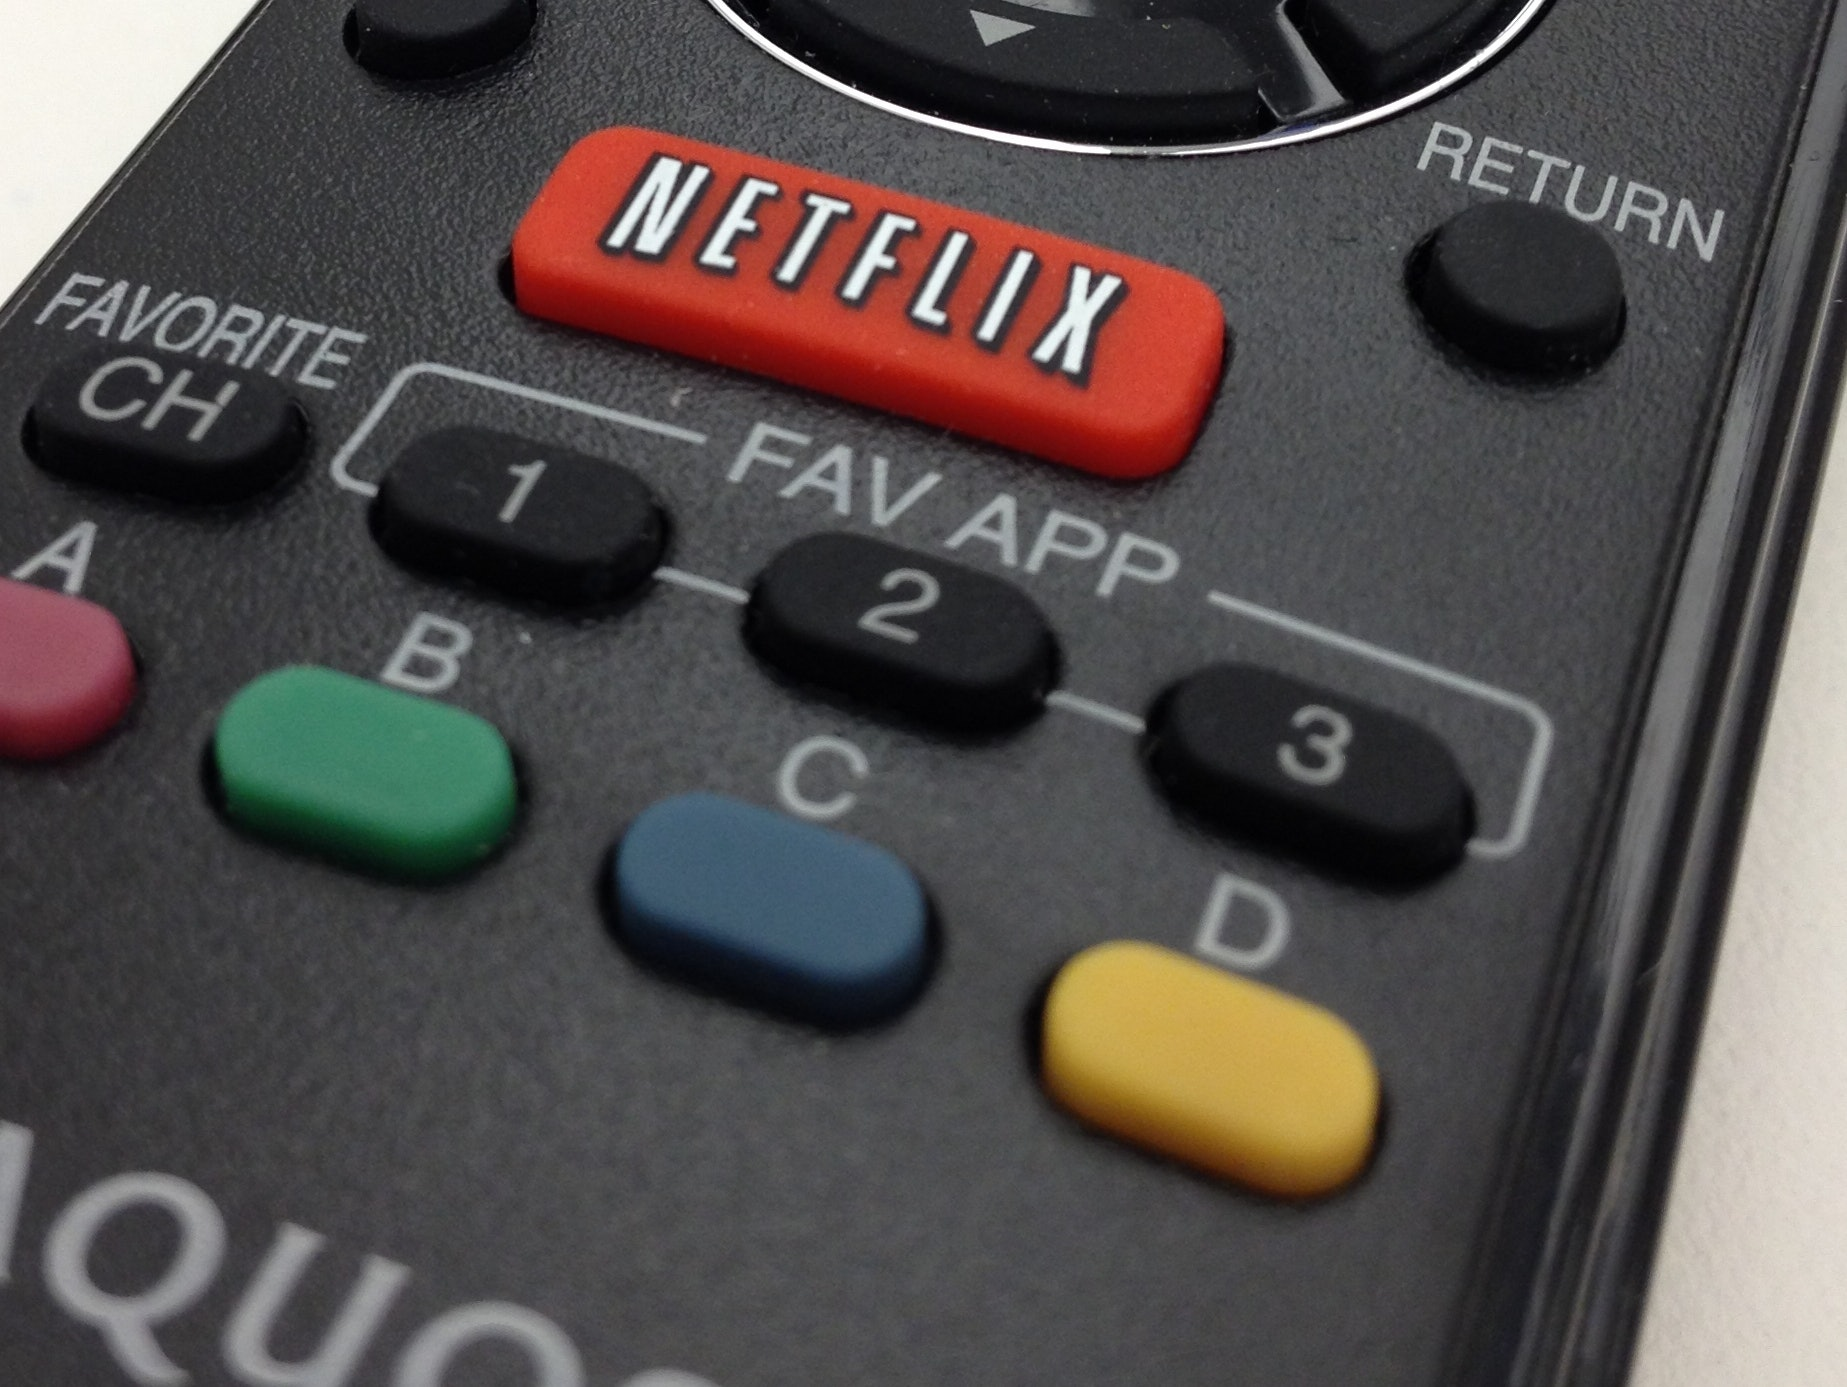 5 Explosive Revelations About Netflix